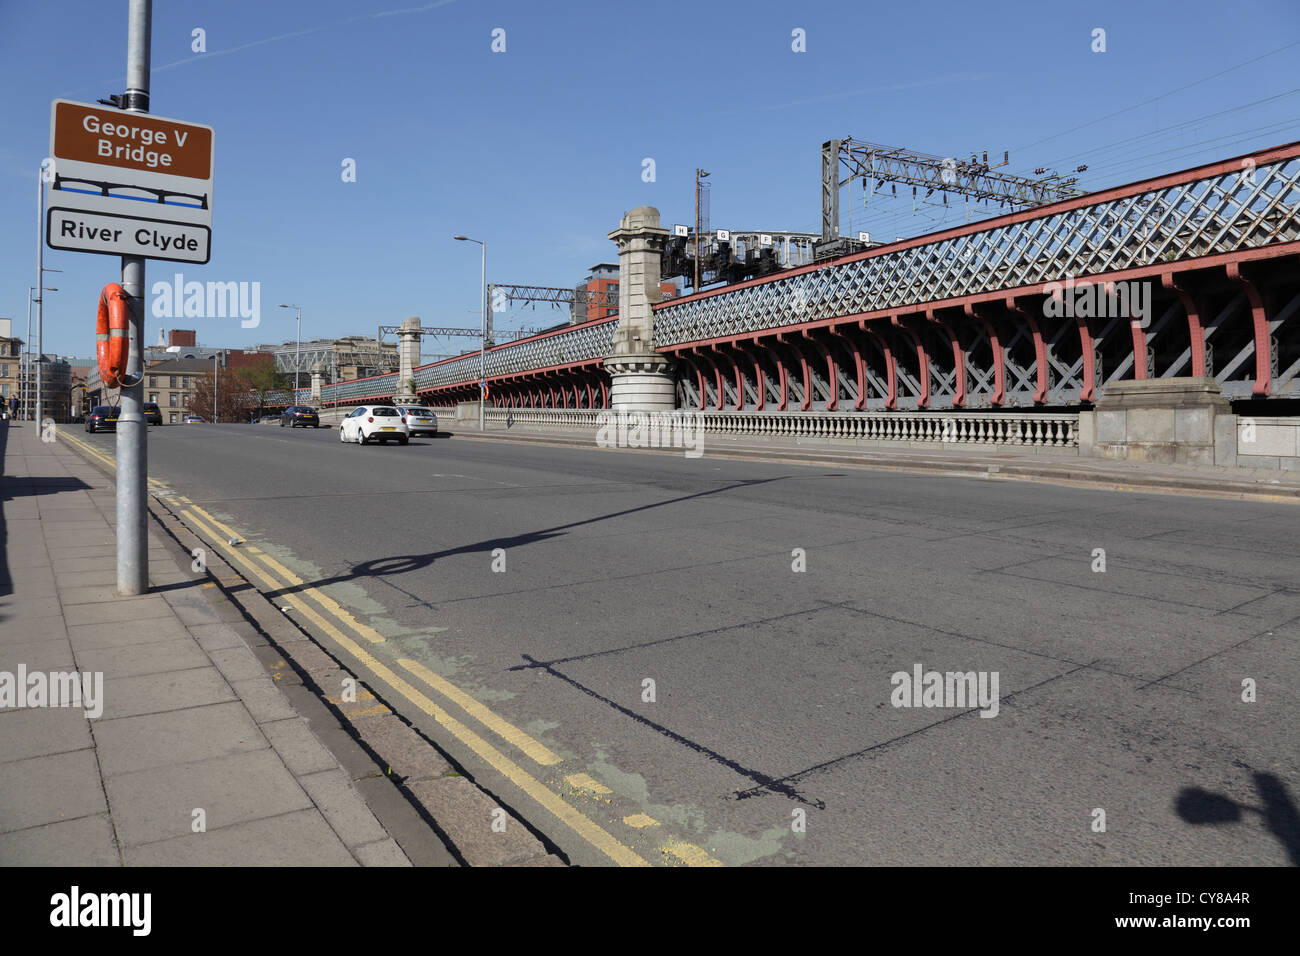 George V Bridge over the River Clyde with Central Station railway bridge behind, Commerce Street, Glasgow, Scotland - Stock Image